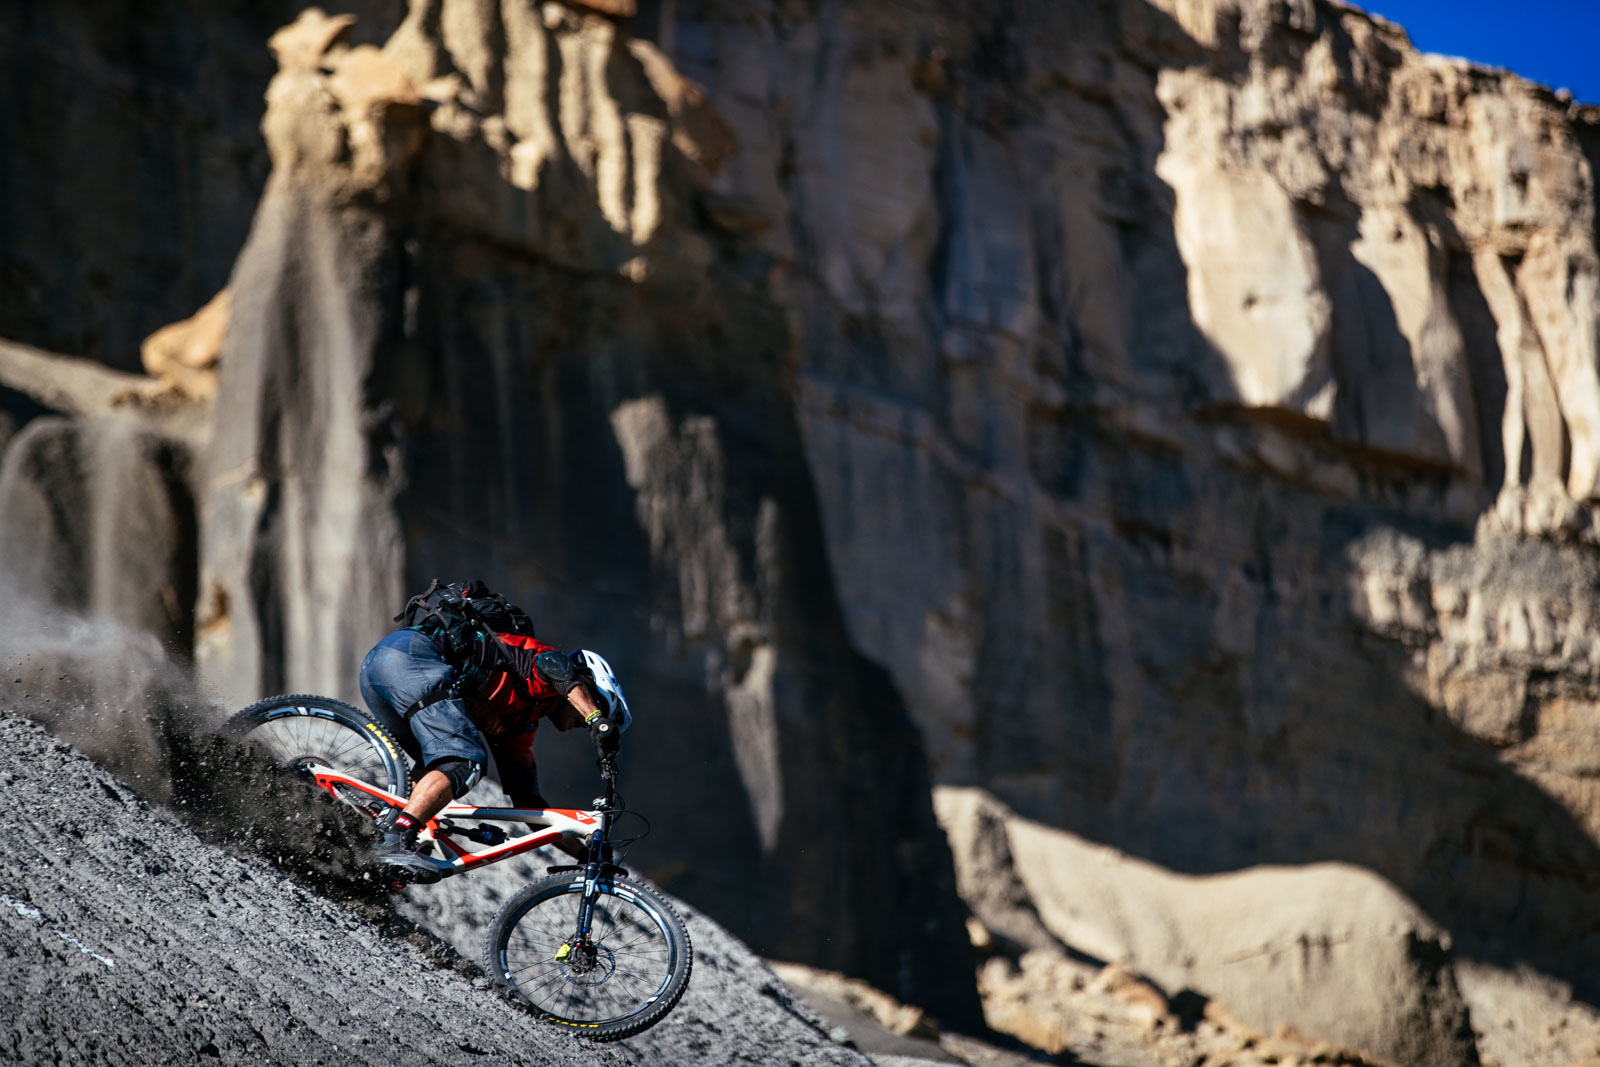 Awesome photo took in Utah.